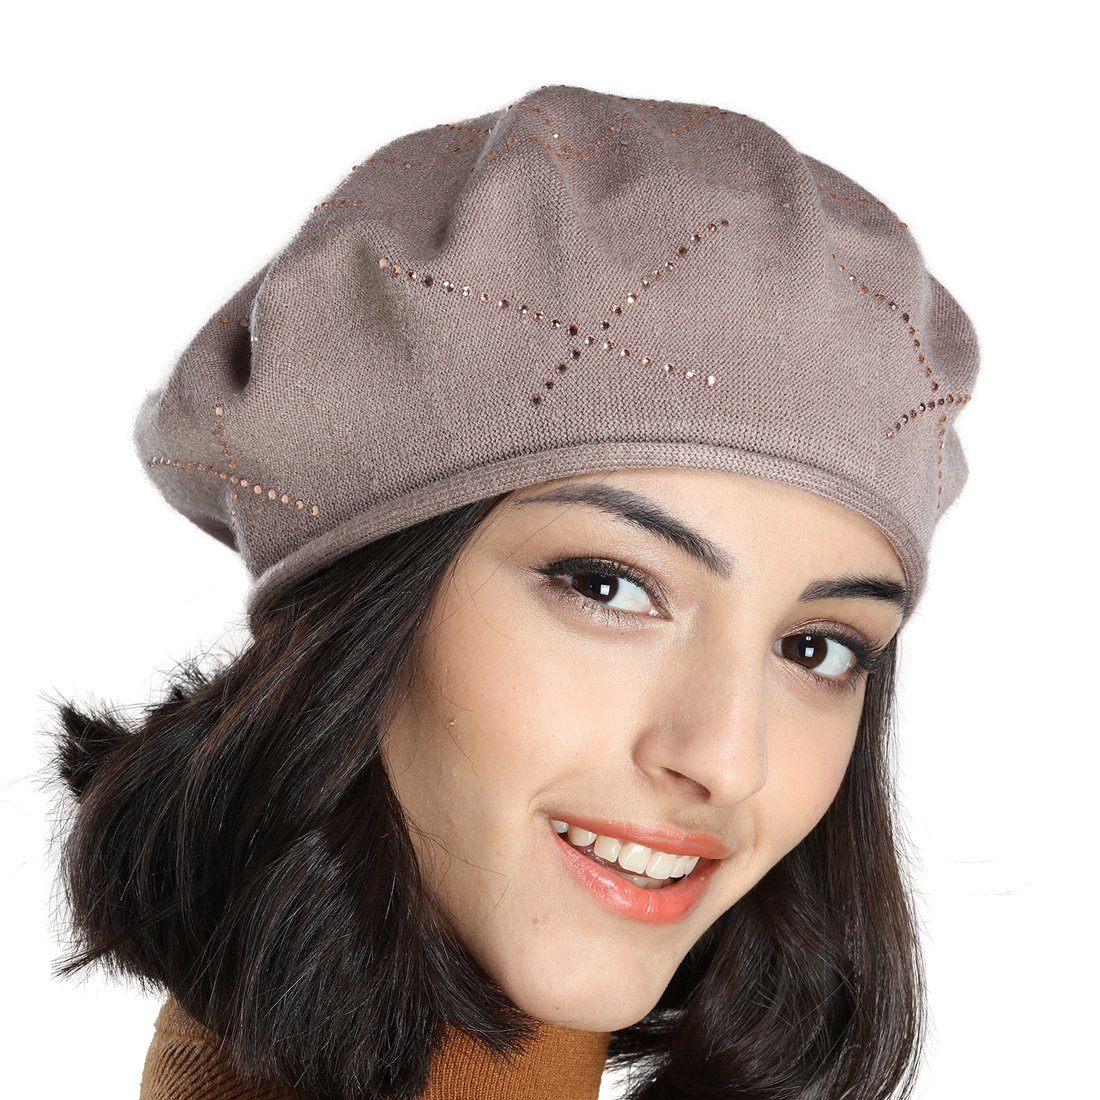 Tomorrow Apariencia Women's Thin Spring Summer Cotton Knit Beret Hat with Diamante Rhinestone Decoration (One Size, Light tan)